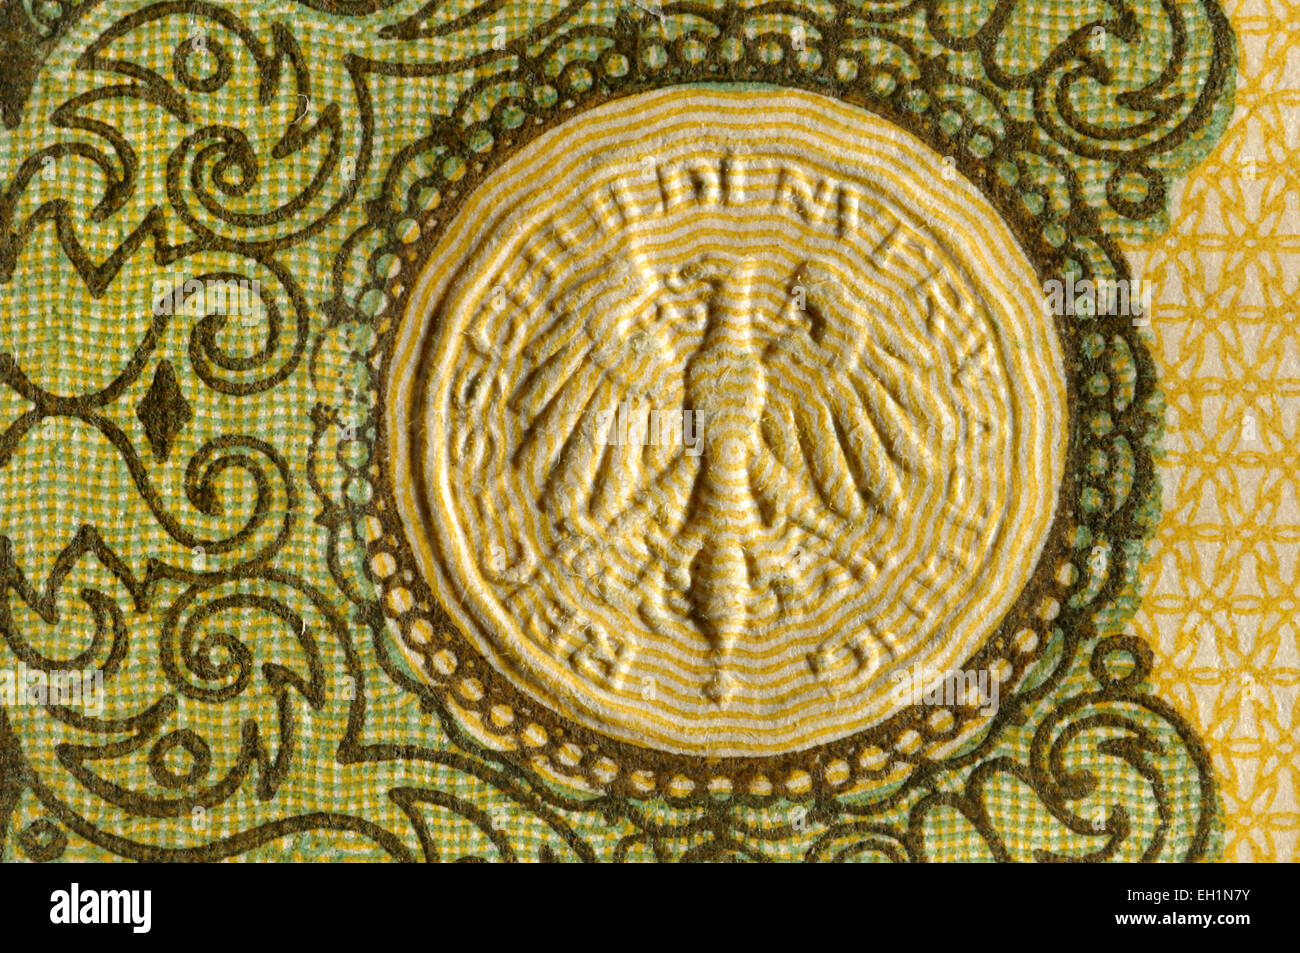 Detail from a 1914 German 1 Mark banknote showing raised embossed security feature - Stock Image